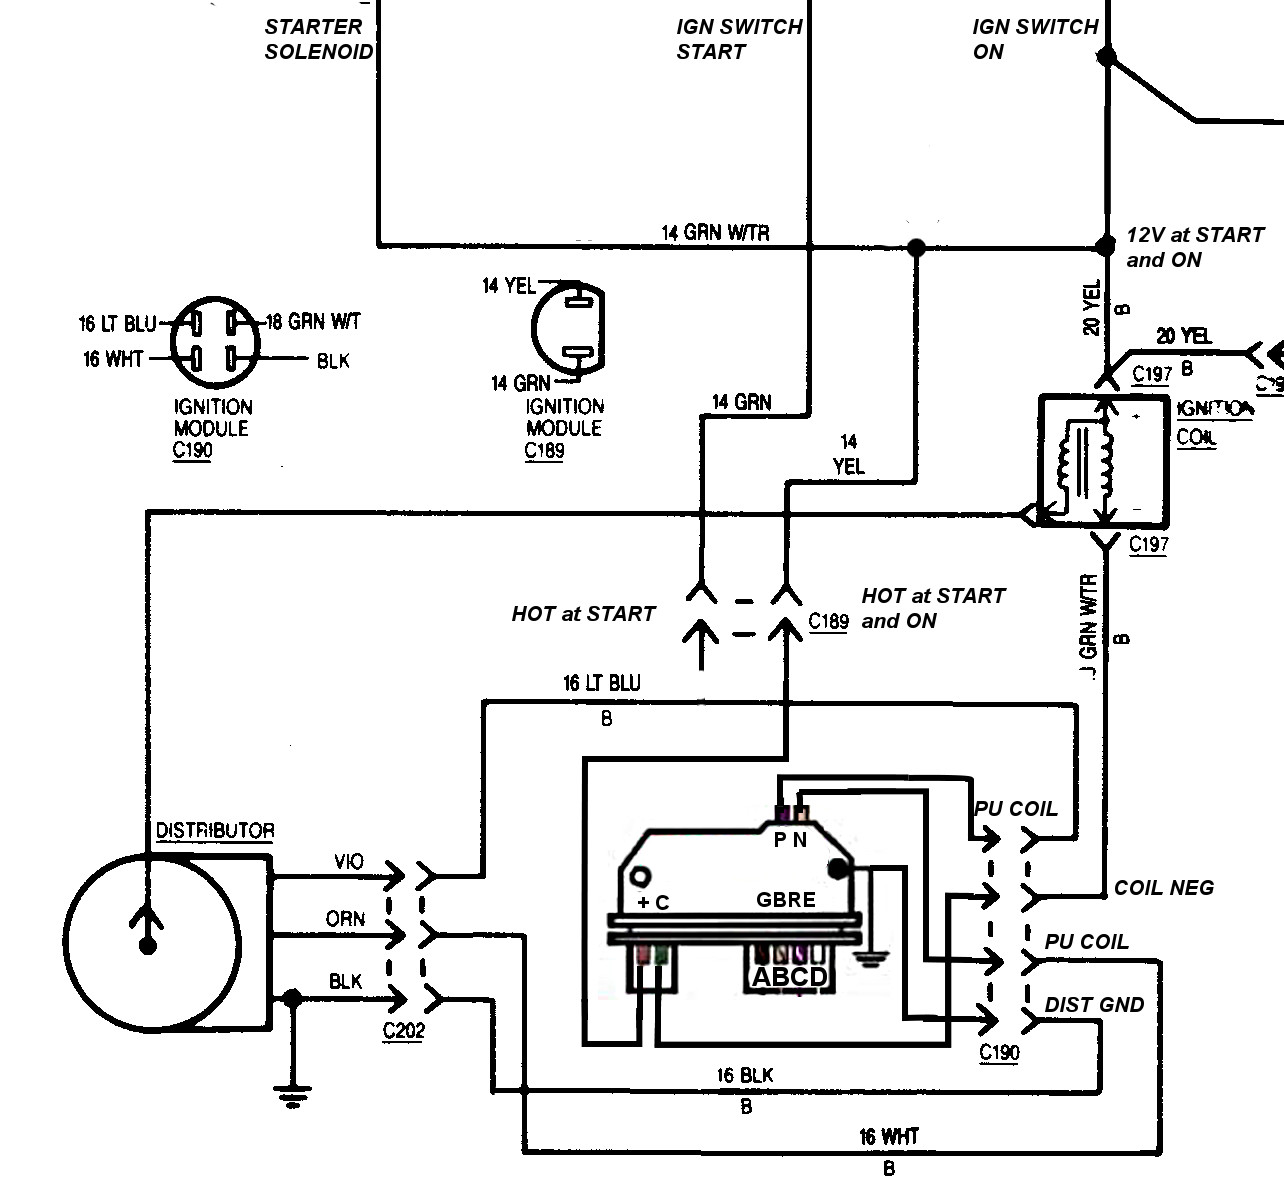 5 Pin Gm Hei Ignition Module Wiring Diagram. Gm Ignition